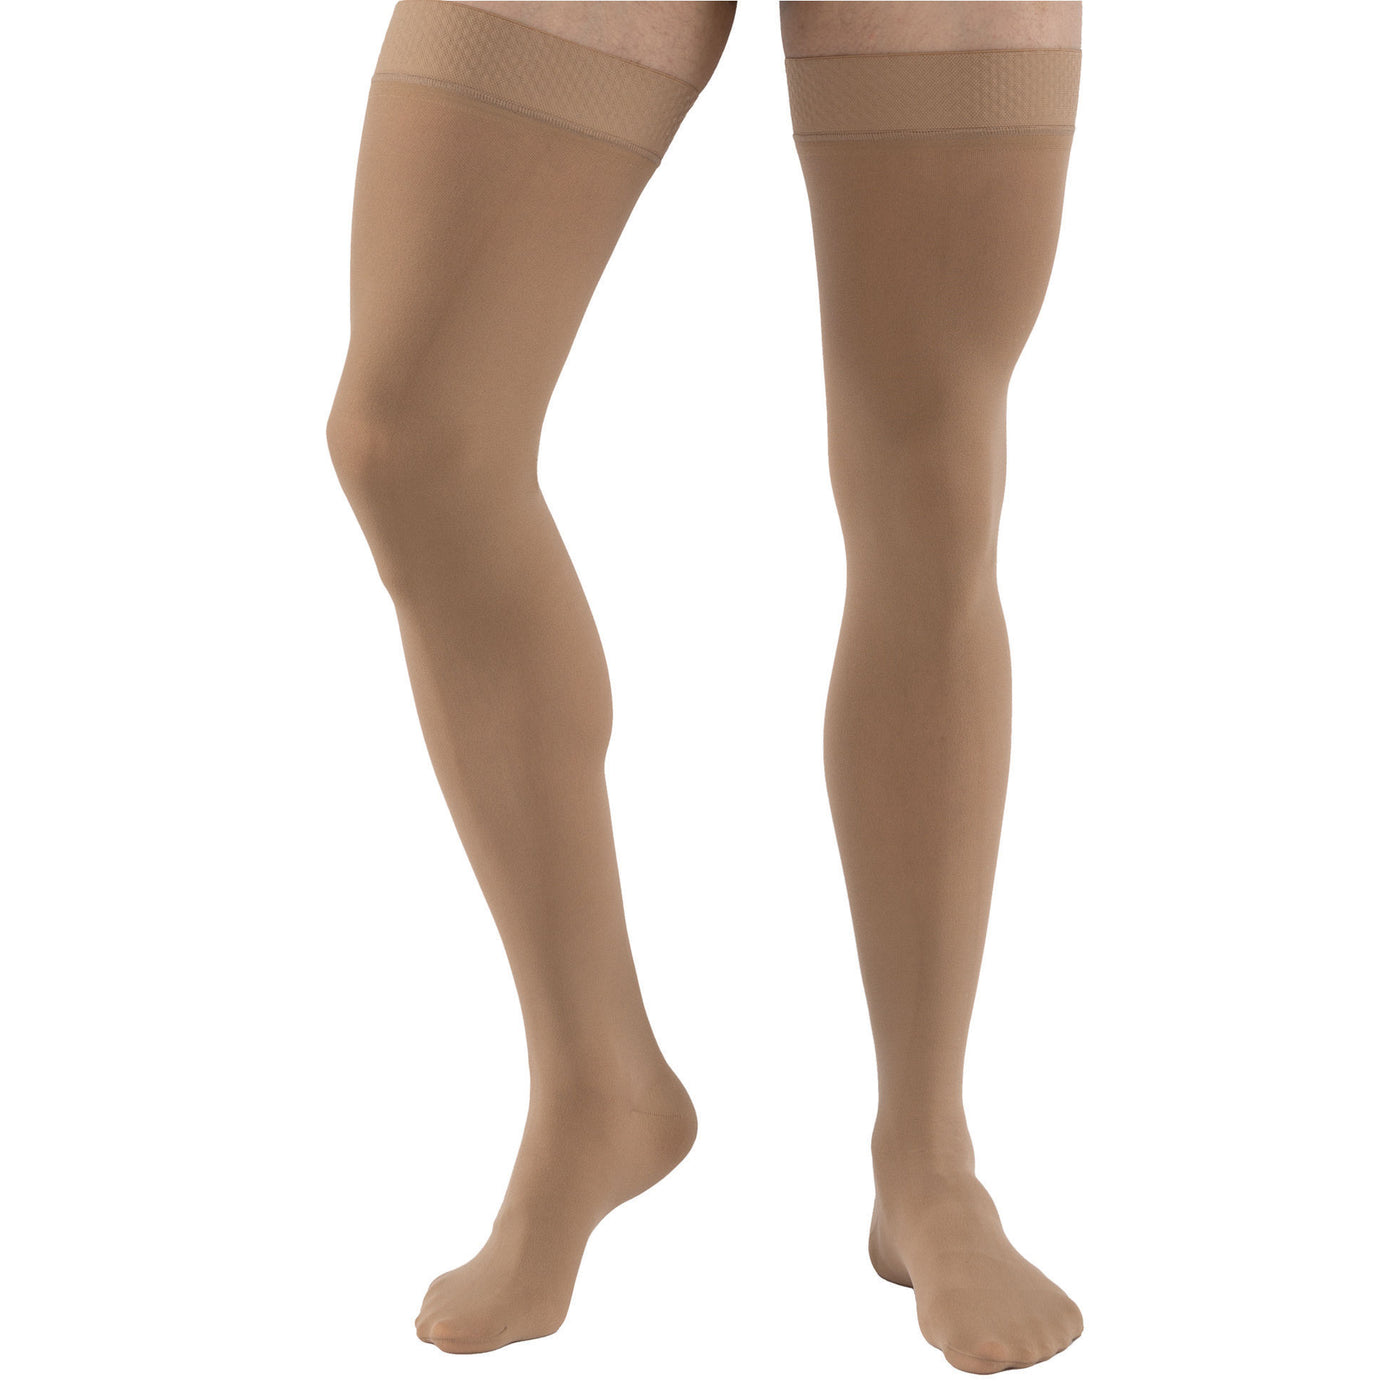 3b8925914b4 Jobst Relief PETITE Thigh Highs 20-30mmHg — BrightLife Direct